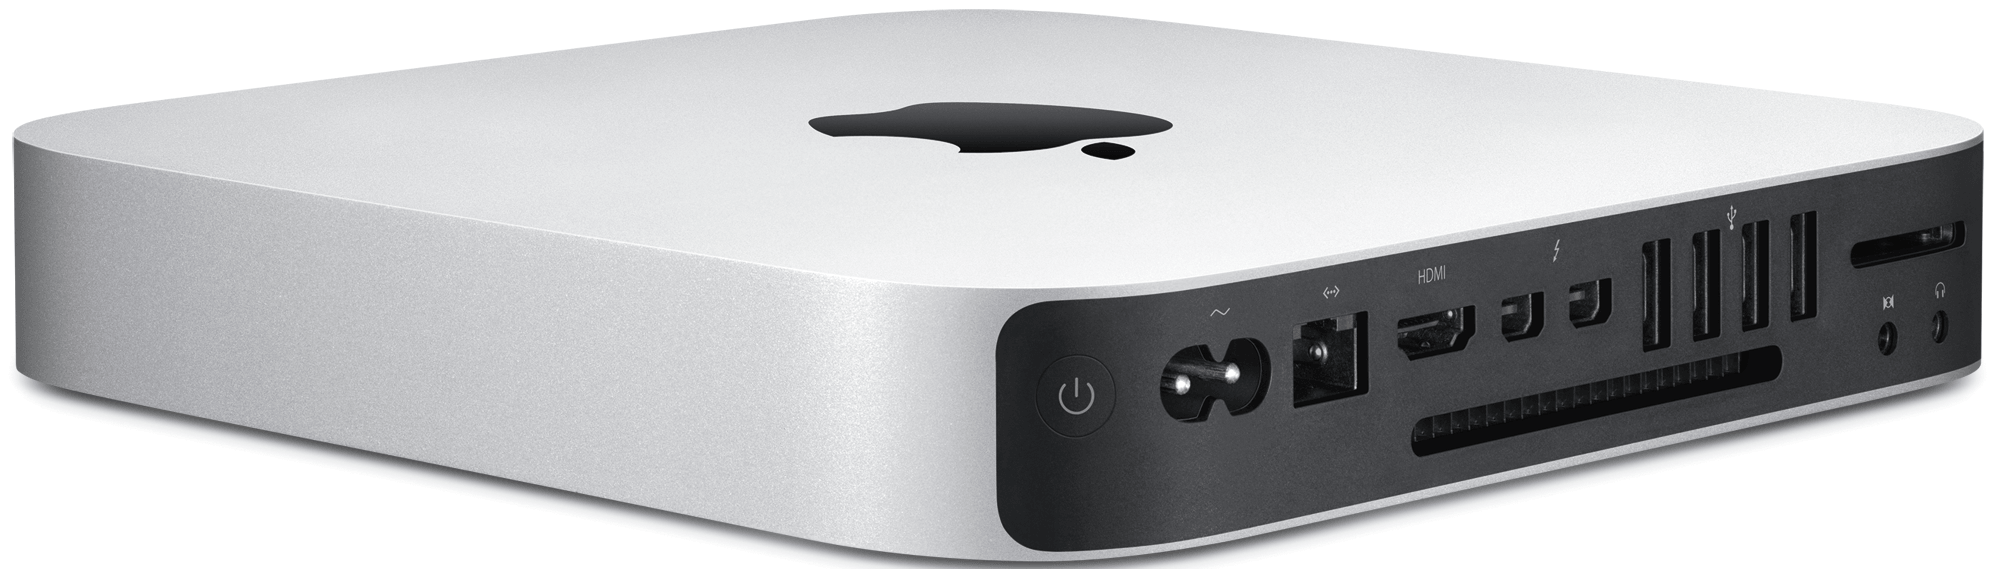 https://cdn-reichelt.de/bilder/web/xxl_ws/E910/APPLE_MAC_MINI_02.png